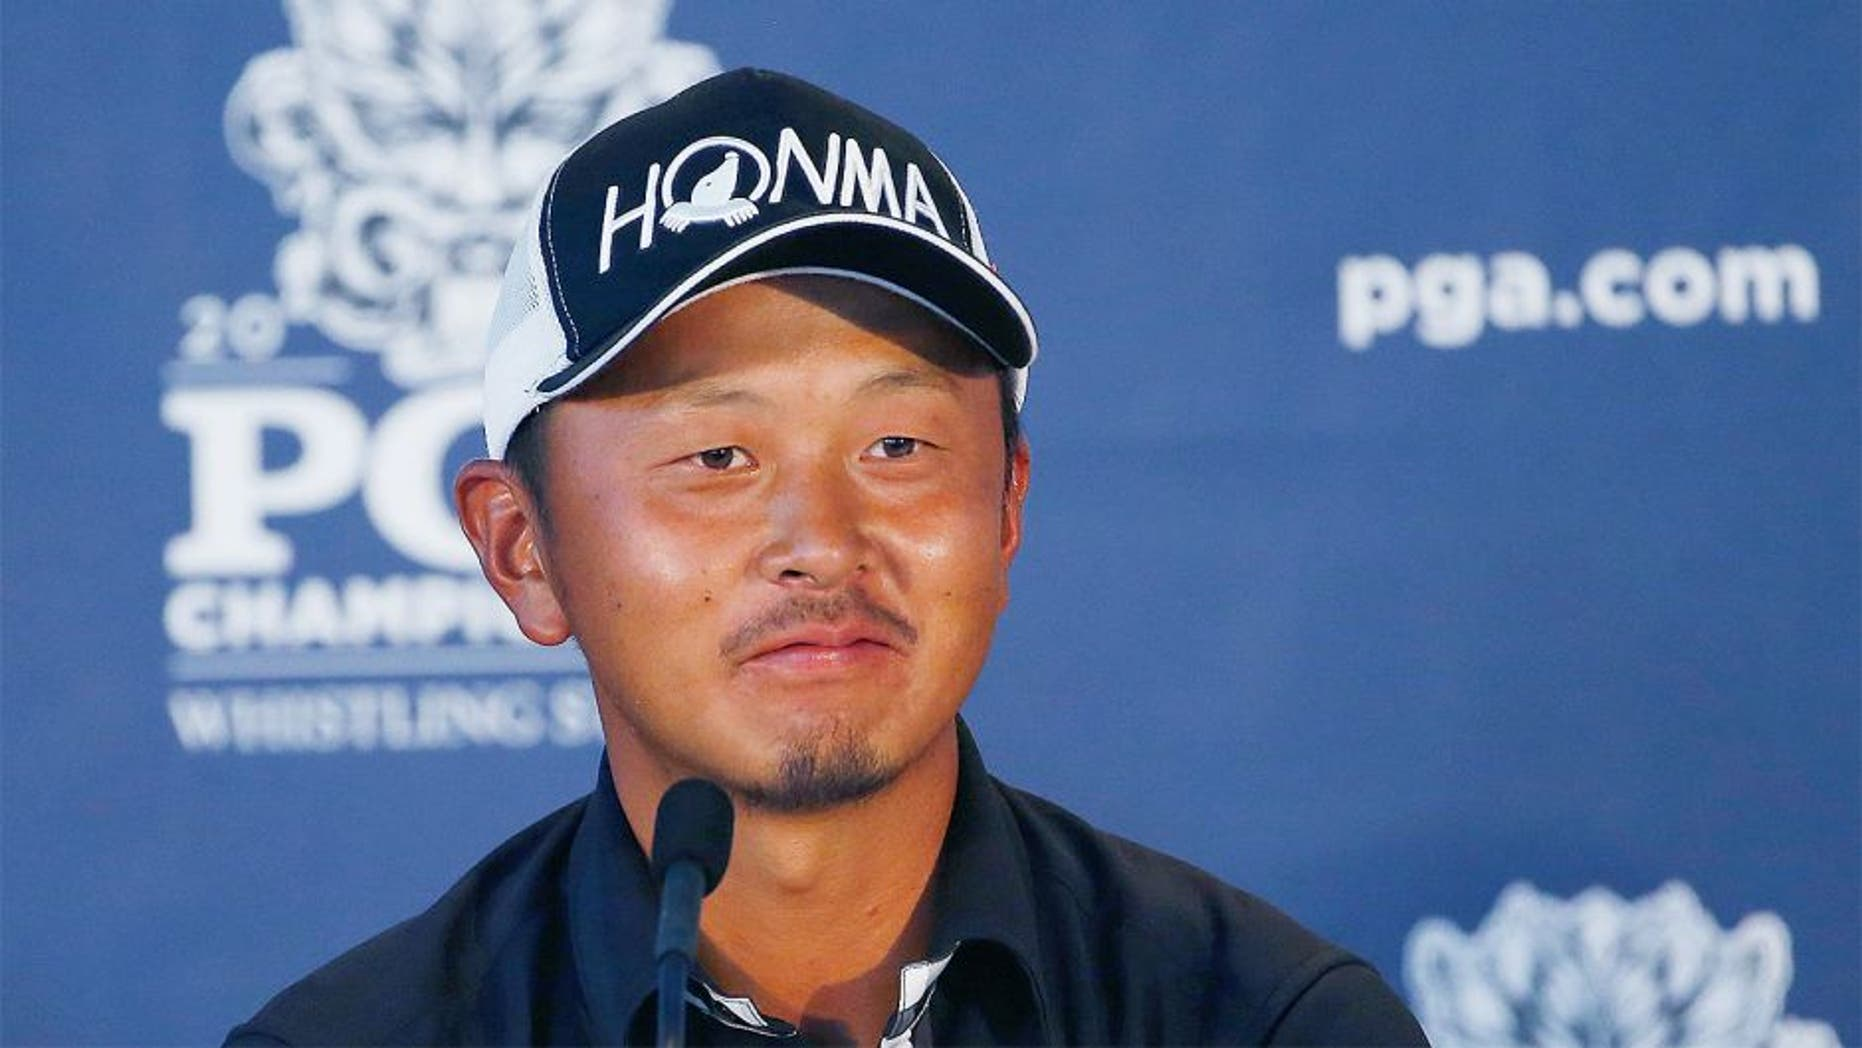 SHEBOYGAN, WI - AUGUST 14: Hiroshi Iwata of Japan speaks with the media after shooting a nine-under par 63 during the second round of the 2015 PGA Championship at Whistling Straits on August 14, 2015 in Sheboygan, Wisconsin. (Photo by Jamie Squire/Getty Images)